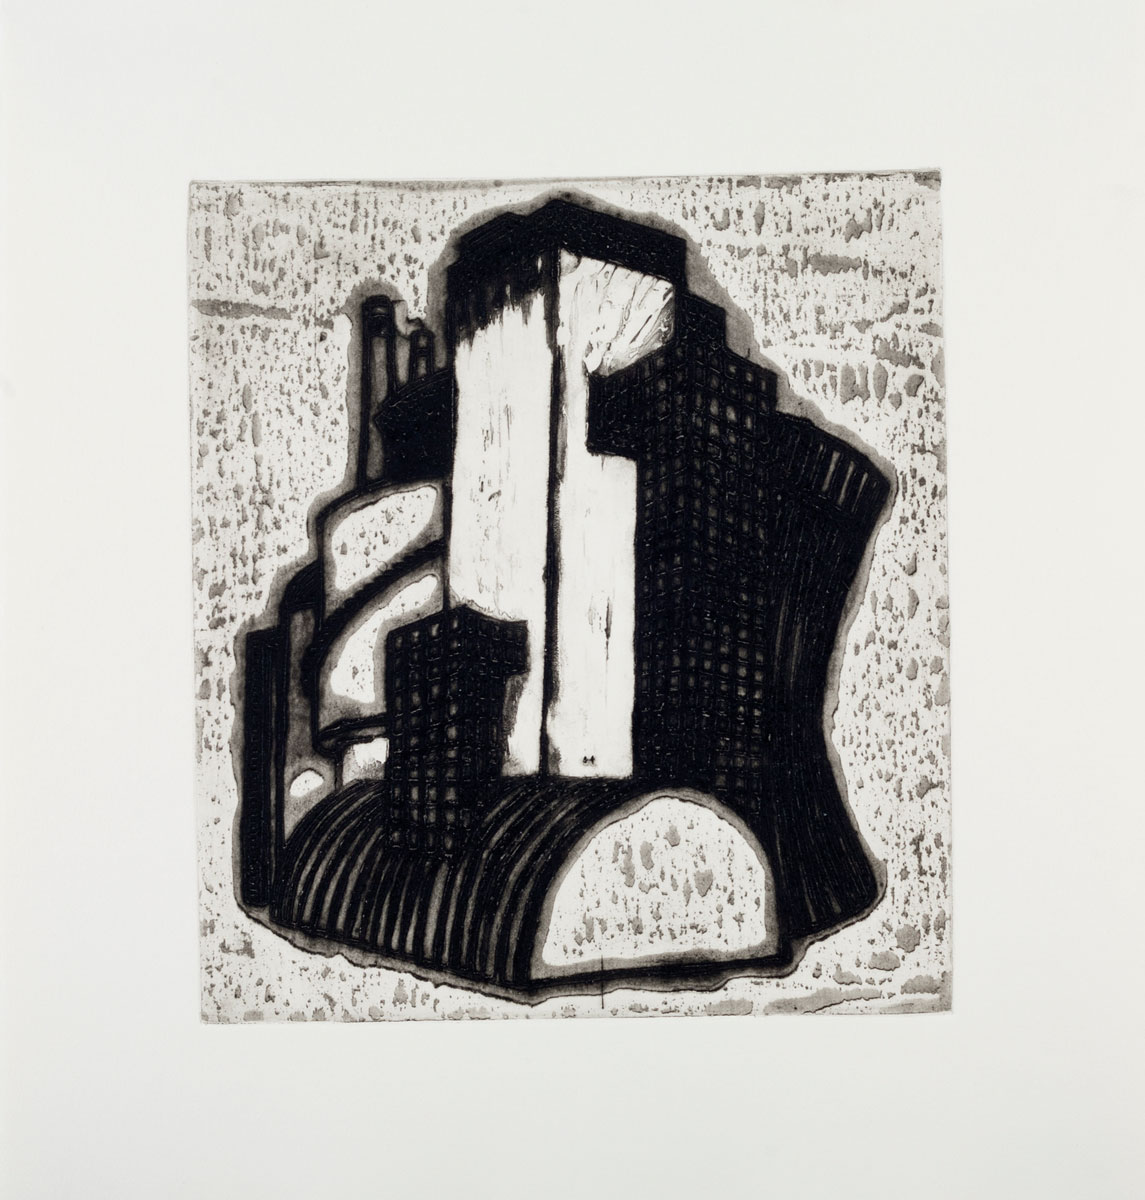 """Ideal Structures for a Dubious Future (Industrial Cluster) , 2012 explosive Intaglio 18.25 x 17.25"""" framed Edition of 12"""